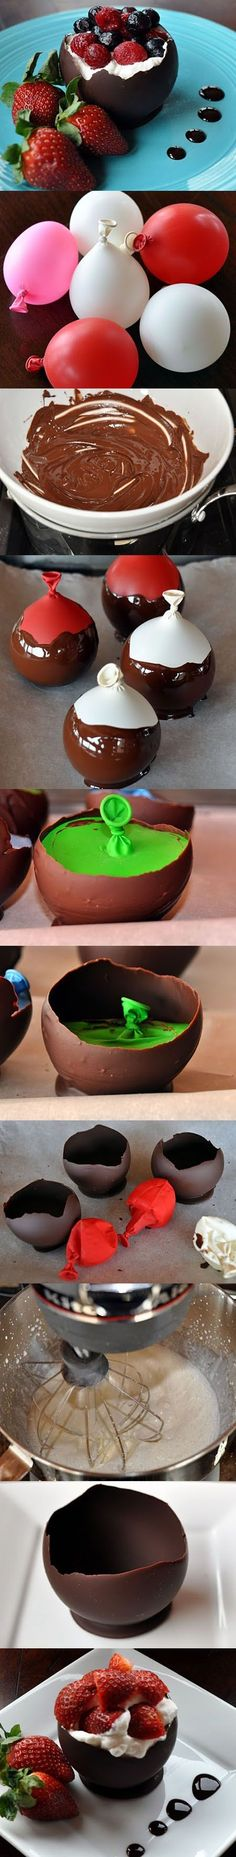 To make the perfect chocolate bowls!